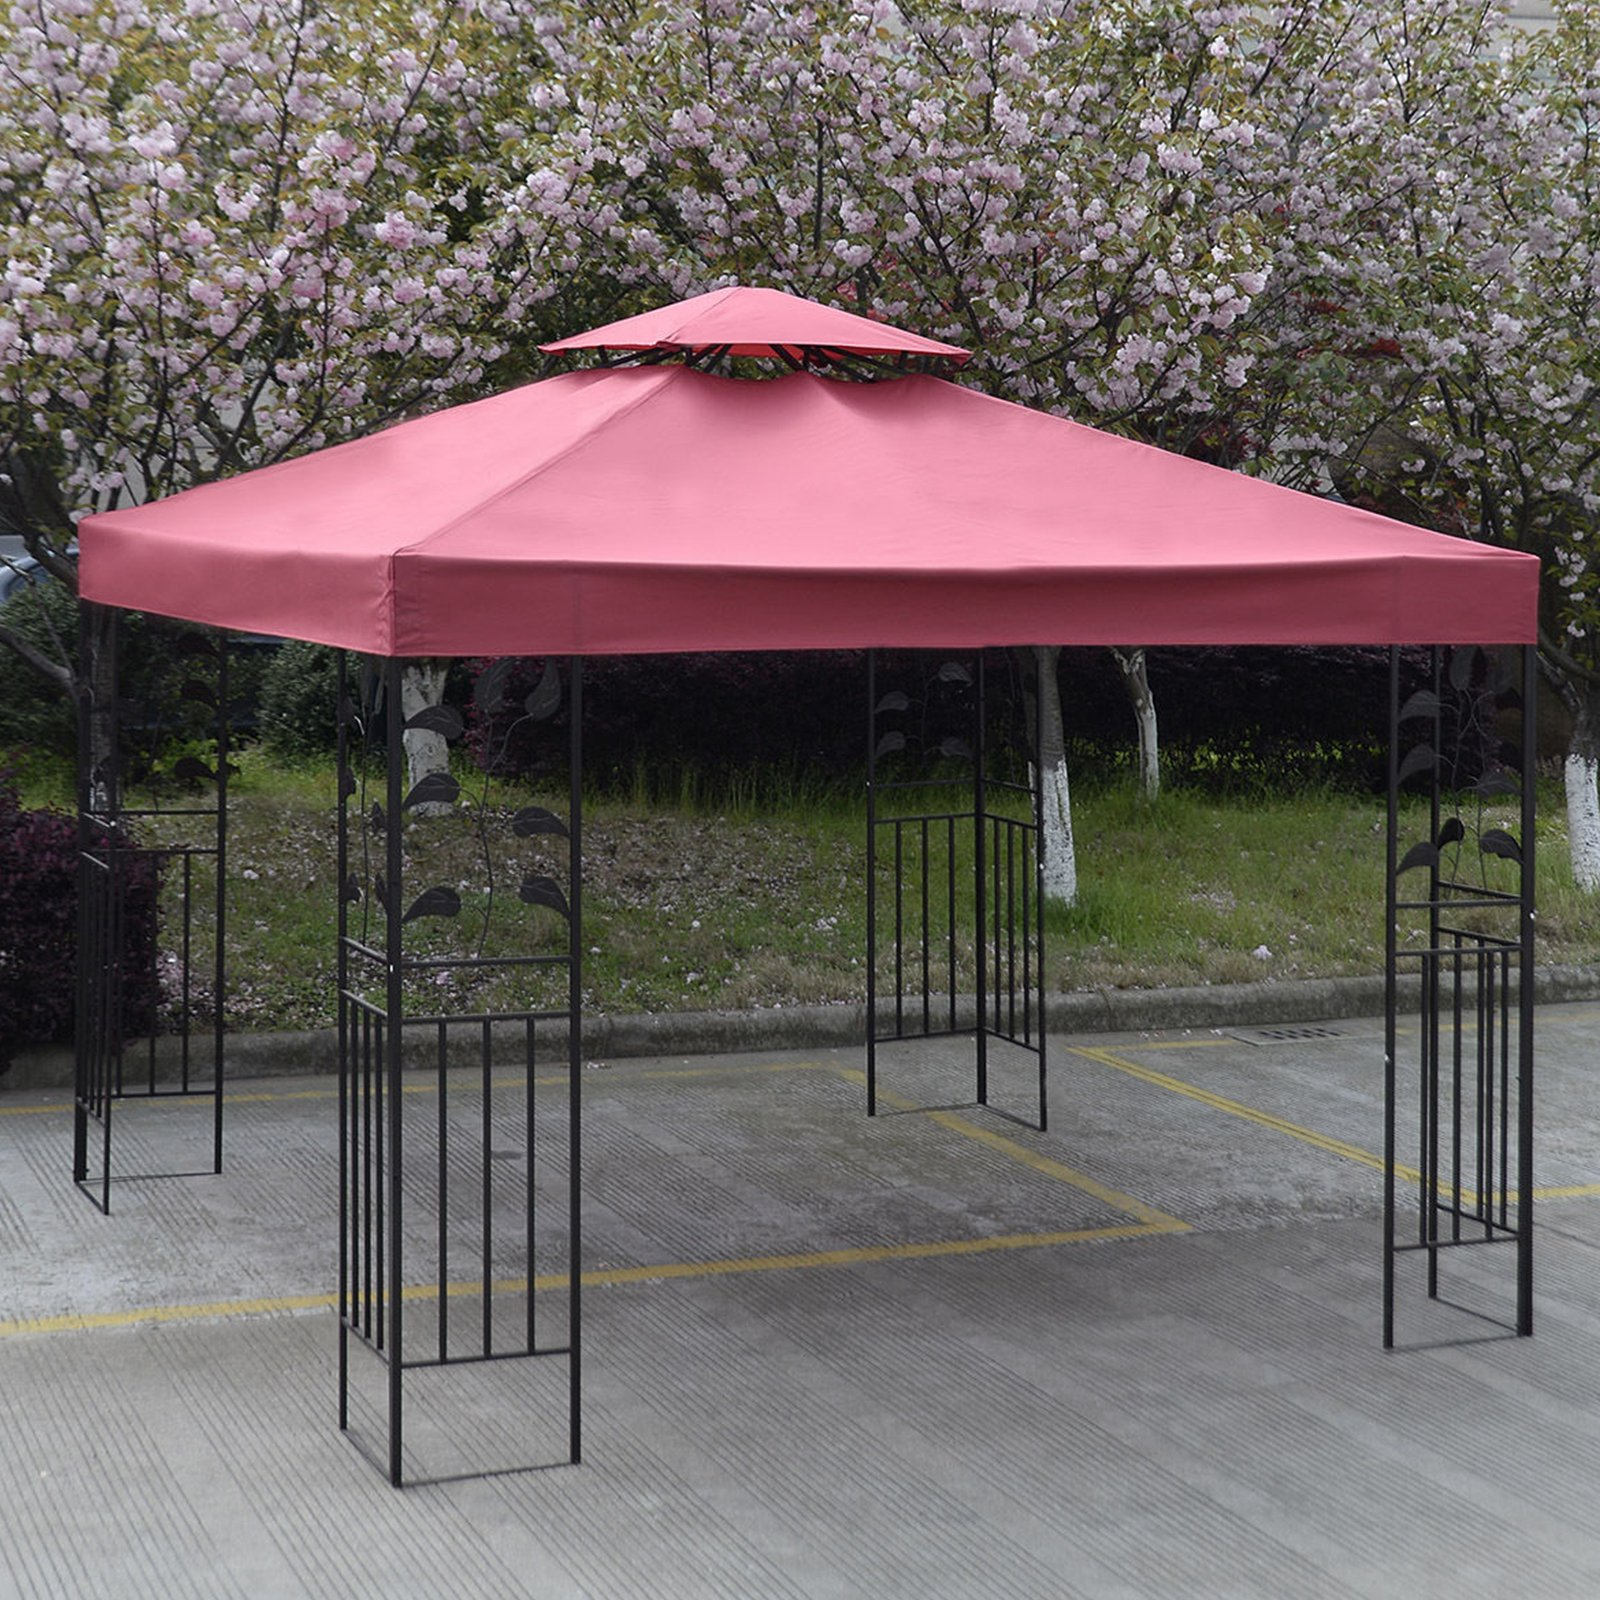 10' X 10' Gazebo Top Cover Patio Canopy Replacement 1-Tier or 2-Tier 3 Color Protection Against UV Rays From Sun Brand New (2 Tier Red) by SUNDRY